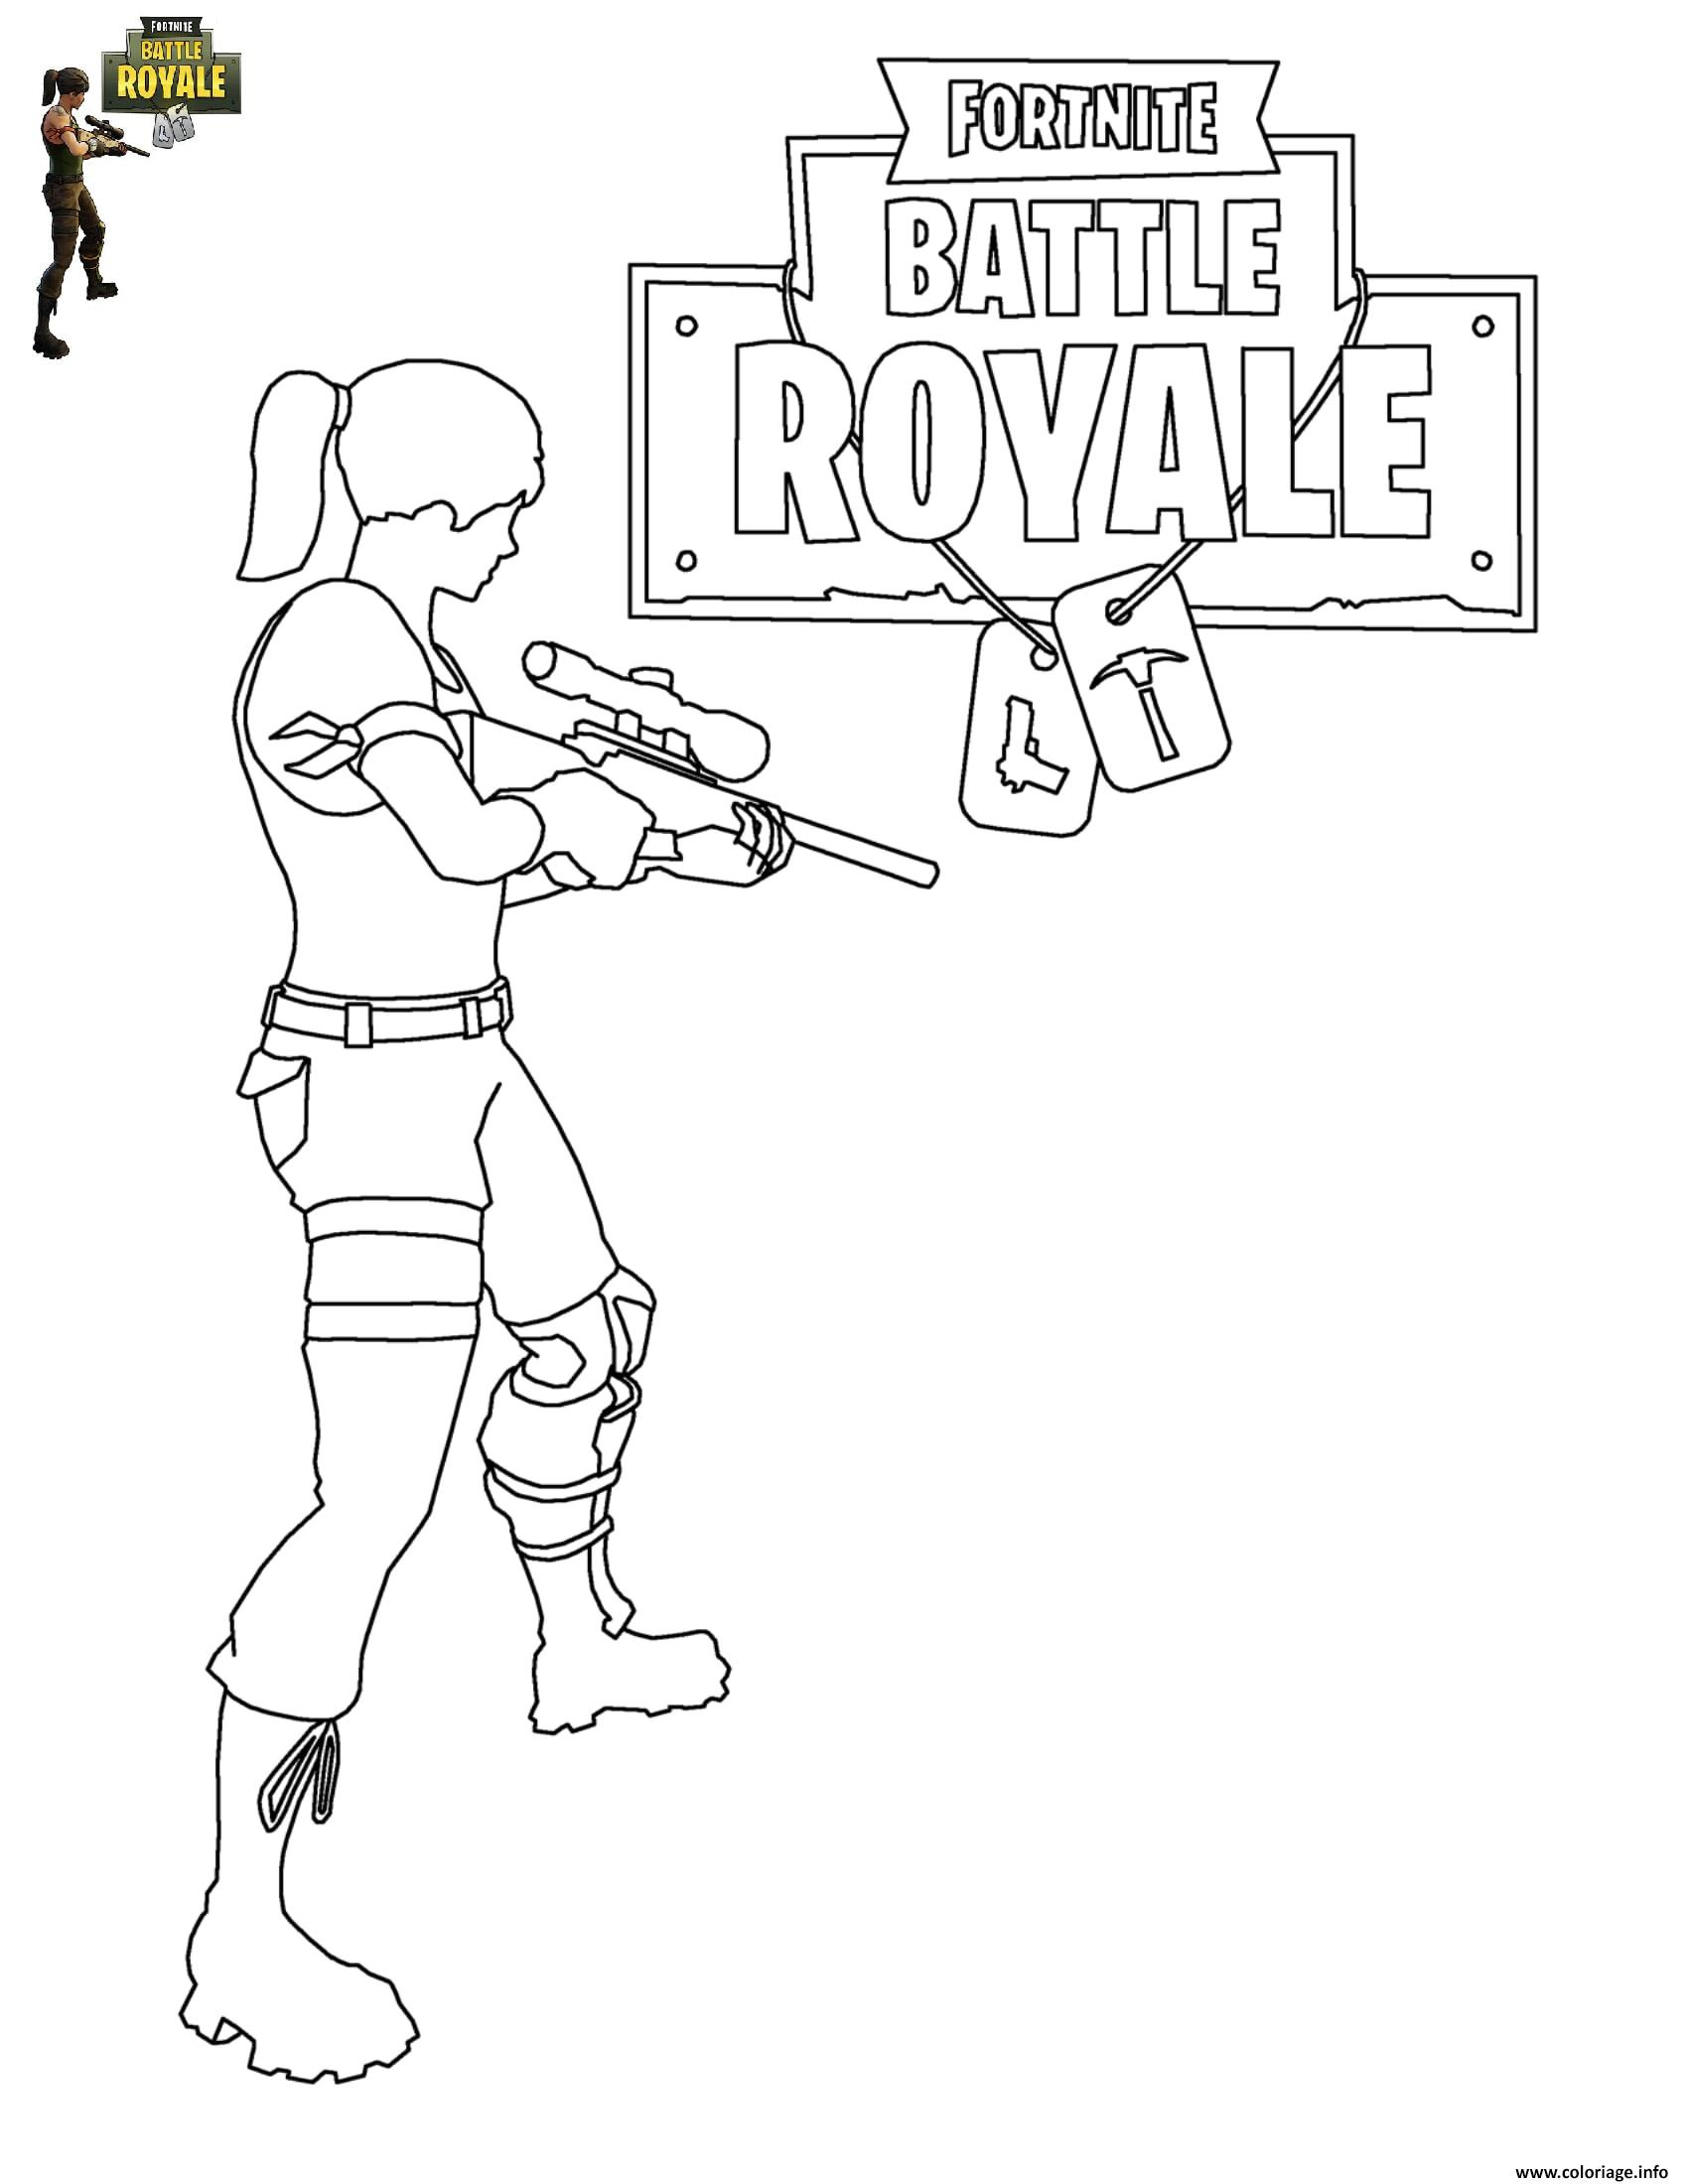 Coloriage A Imprimer Gratuit Fortnite.Coloriage Fortnite Dessin